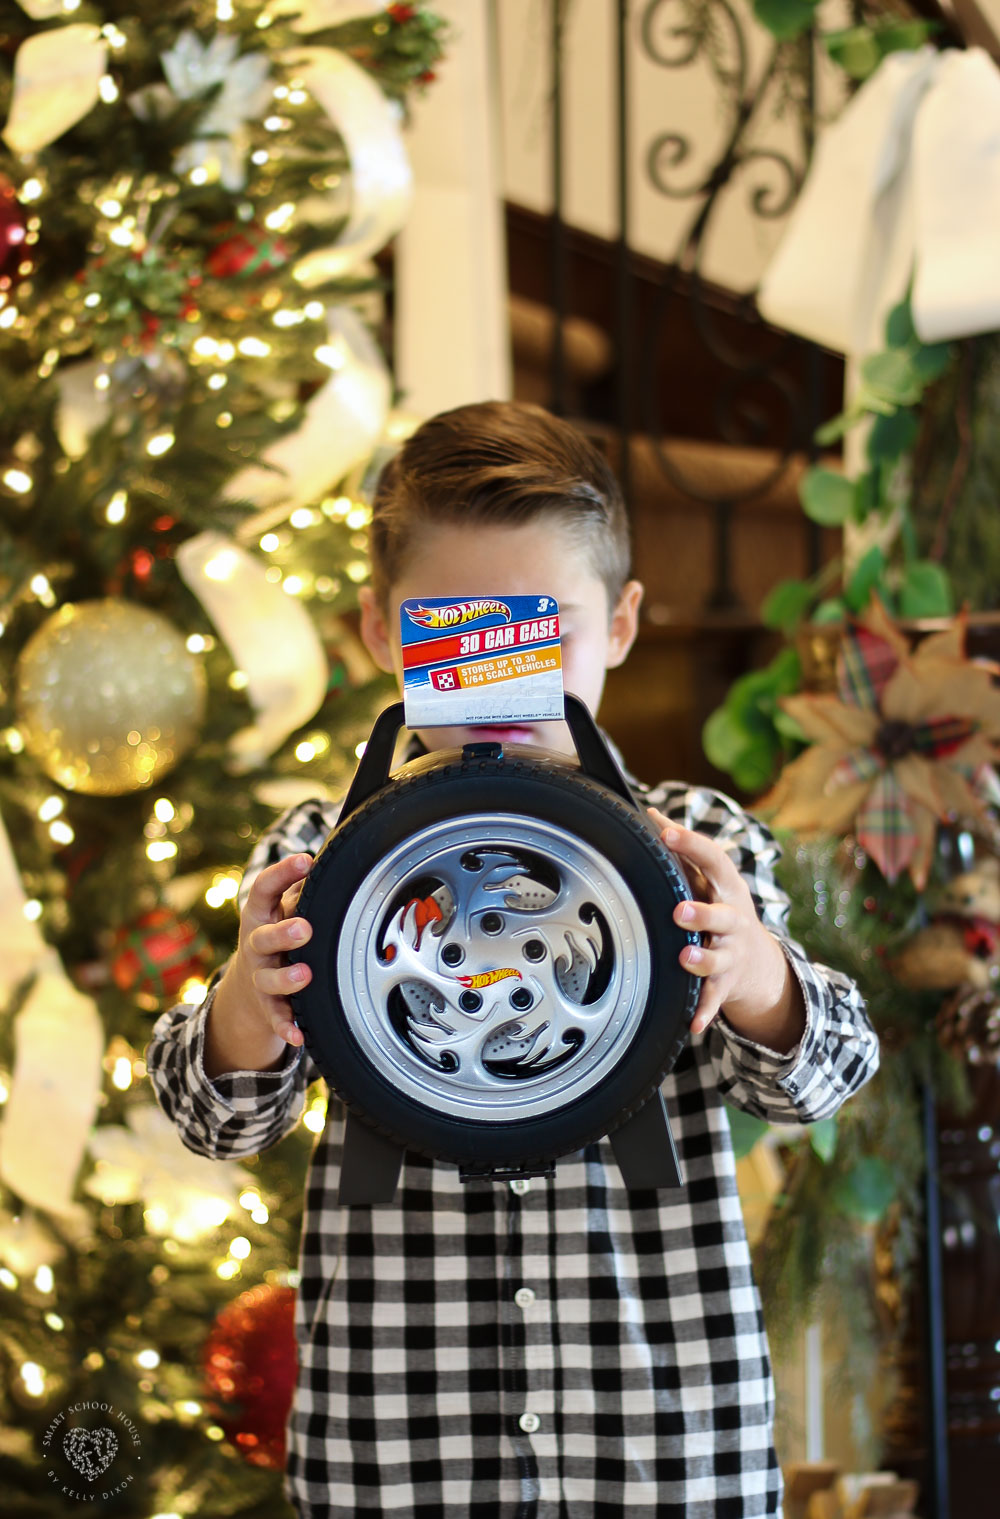 Hot Wheels Toys and organization idea for Christmas #KohlsToys #KohlsFinds #AD